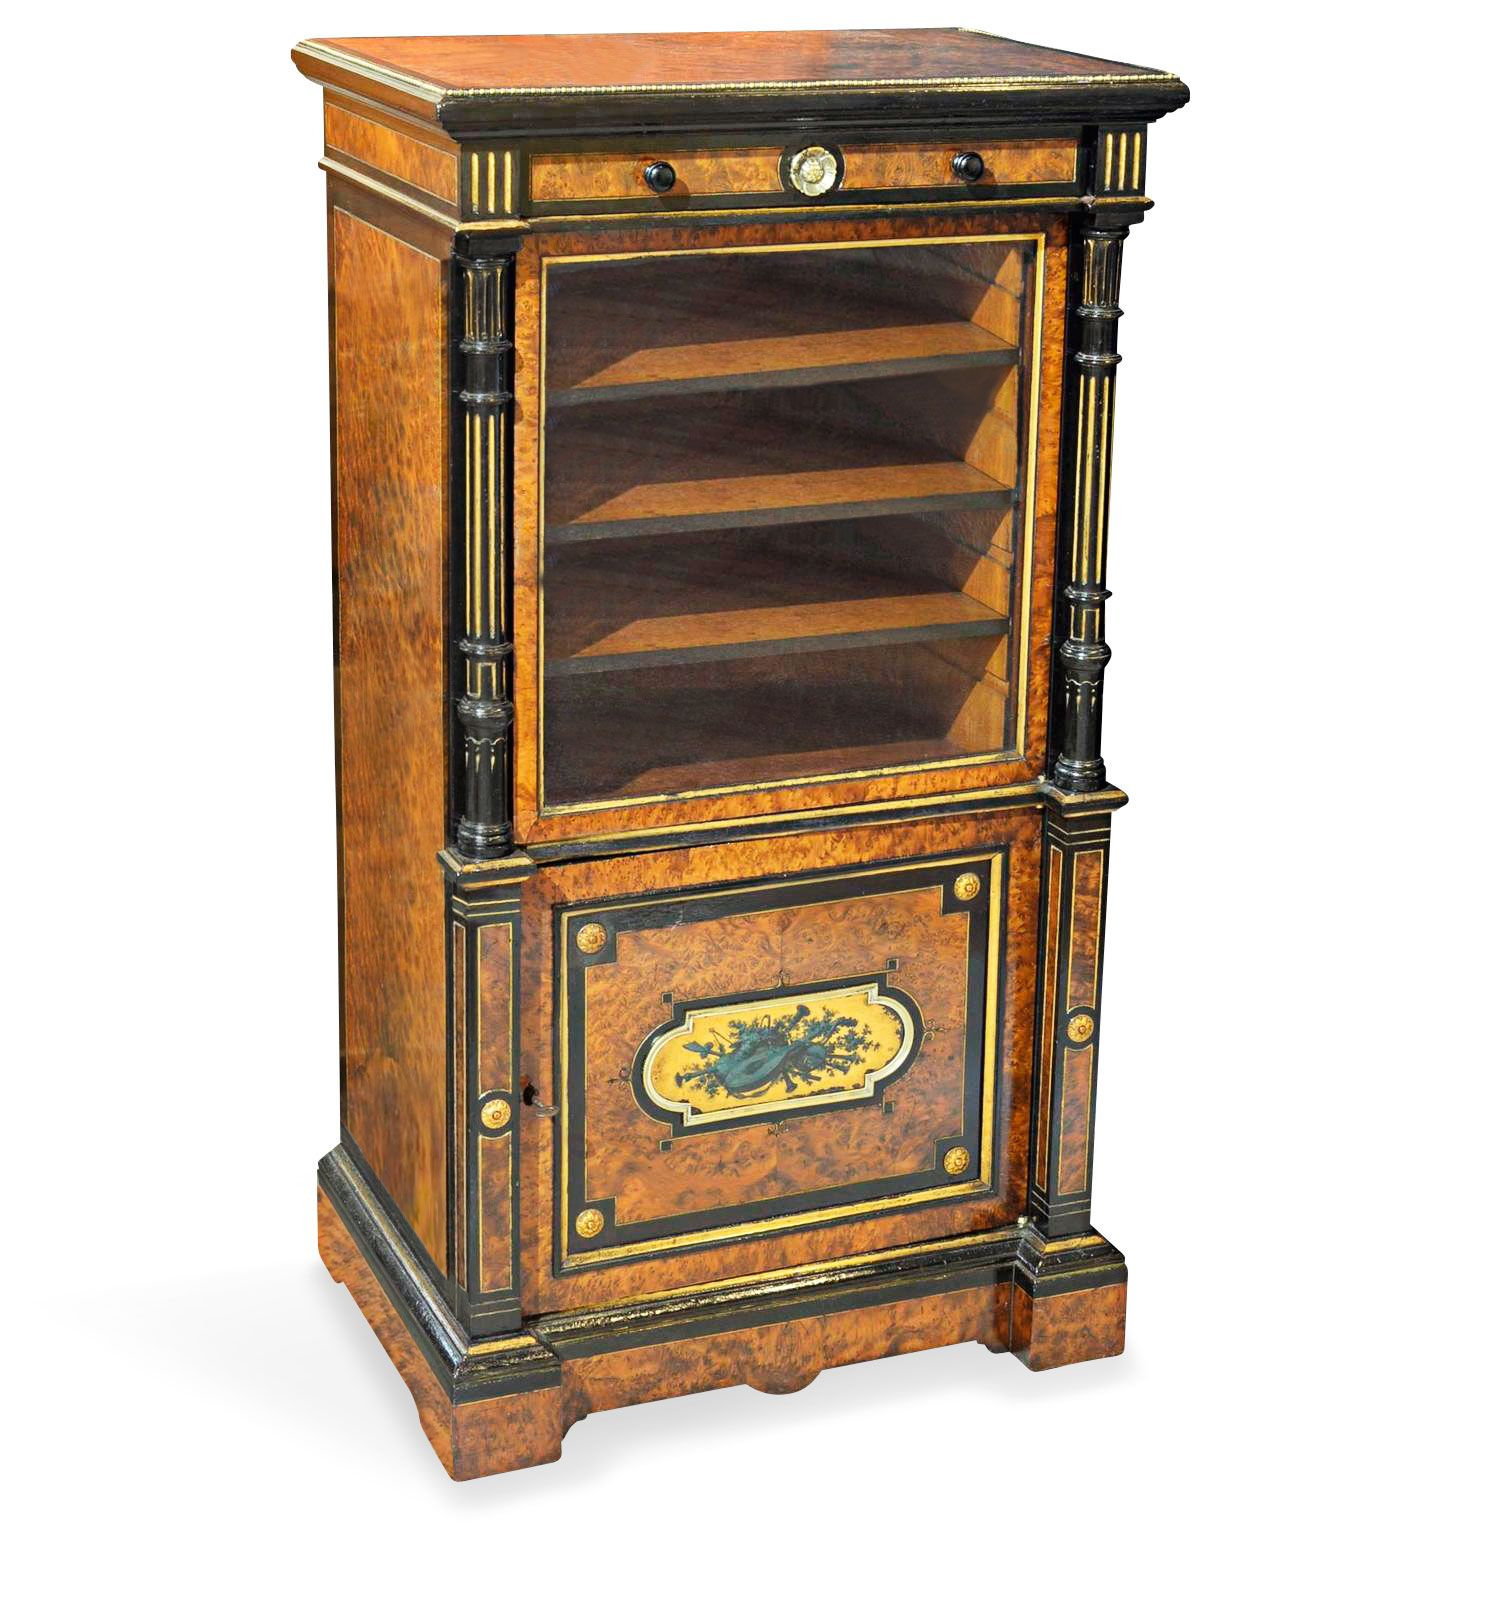 Antiques Worth a Lot of Money - Valuable Antiques and Collectibles